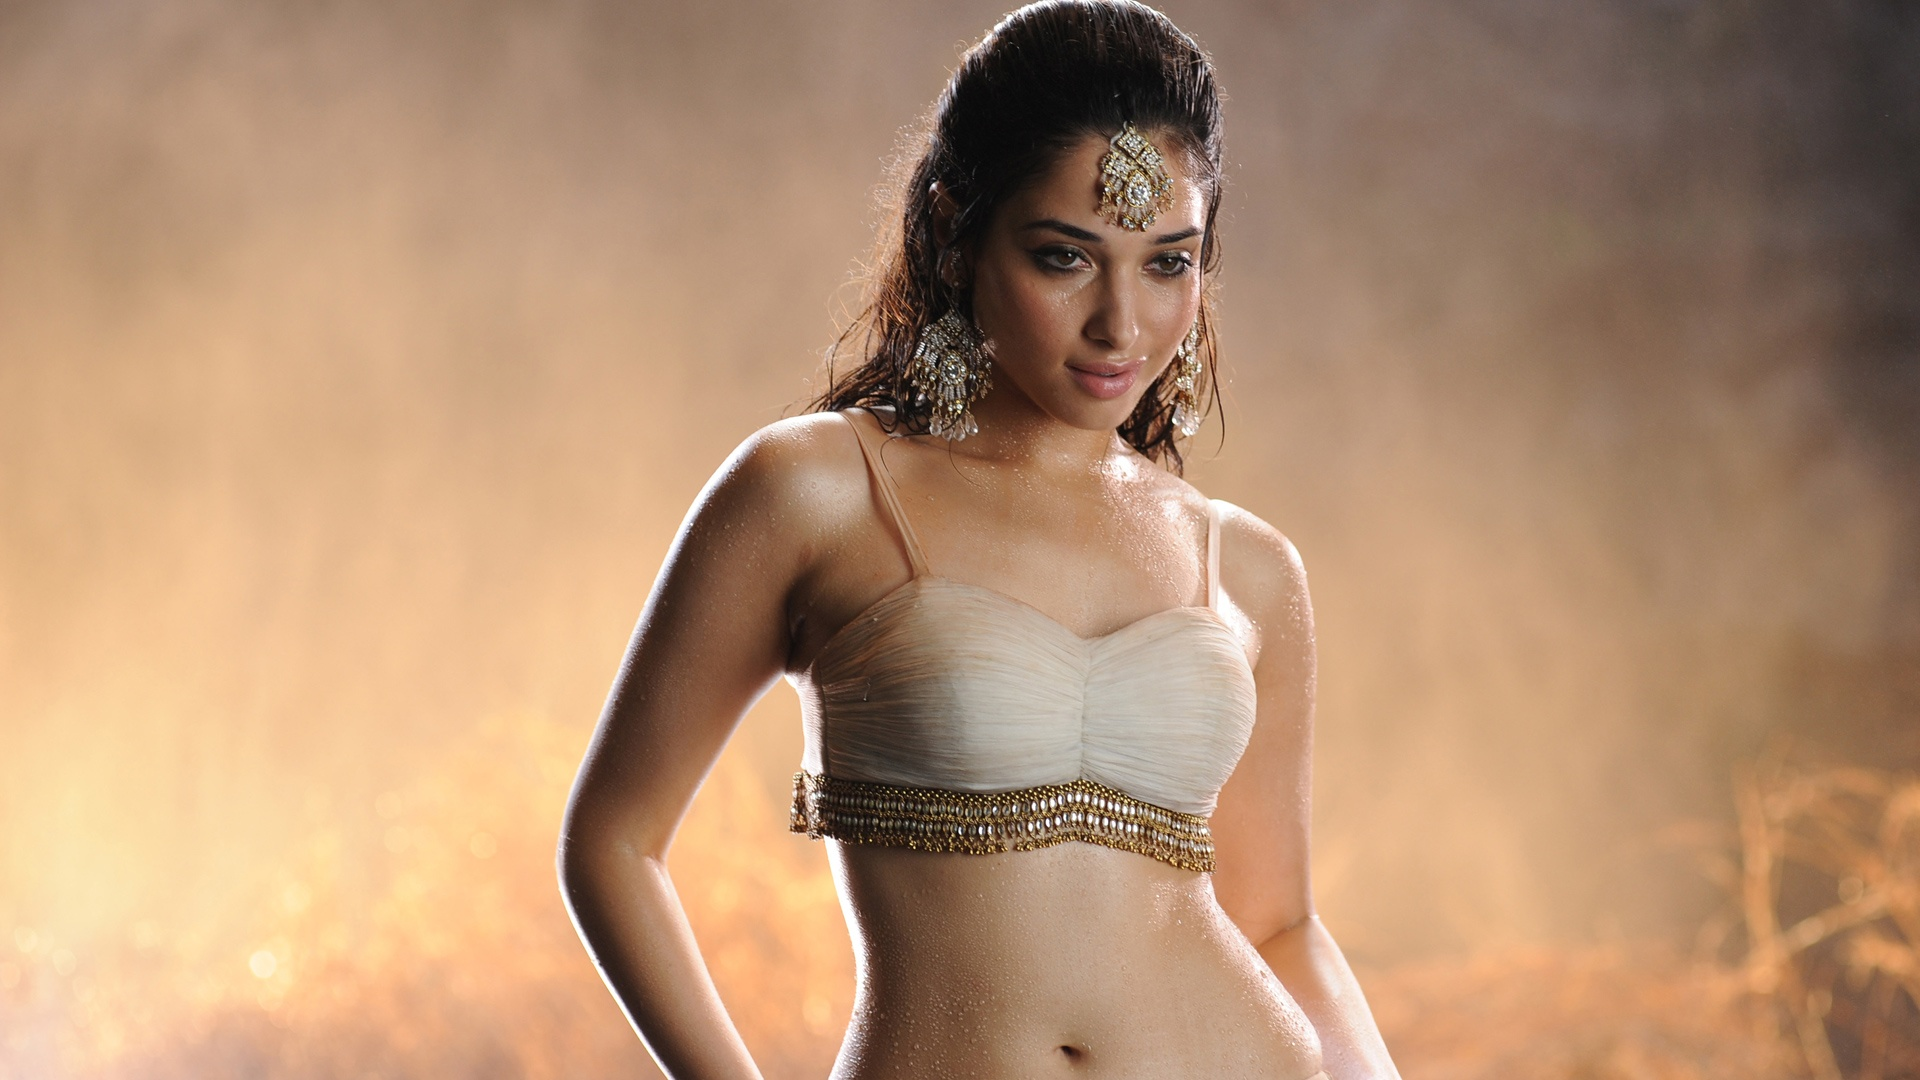 Tamanna In Badrinath Wallpapers In Jpg Format For Free Download